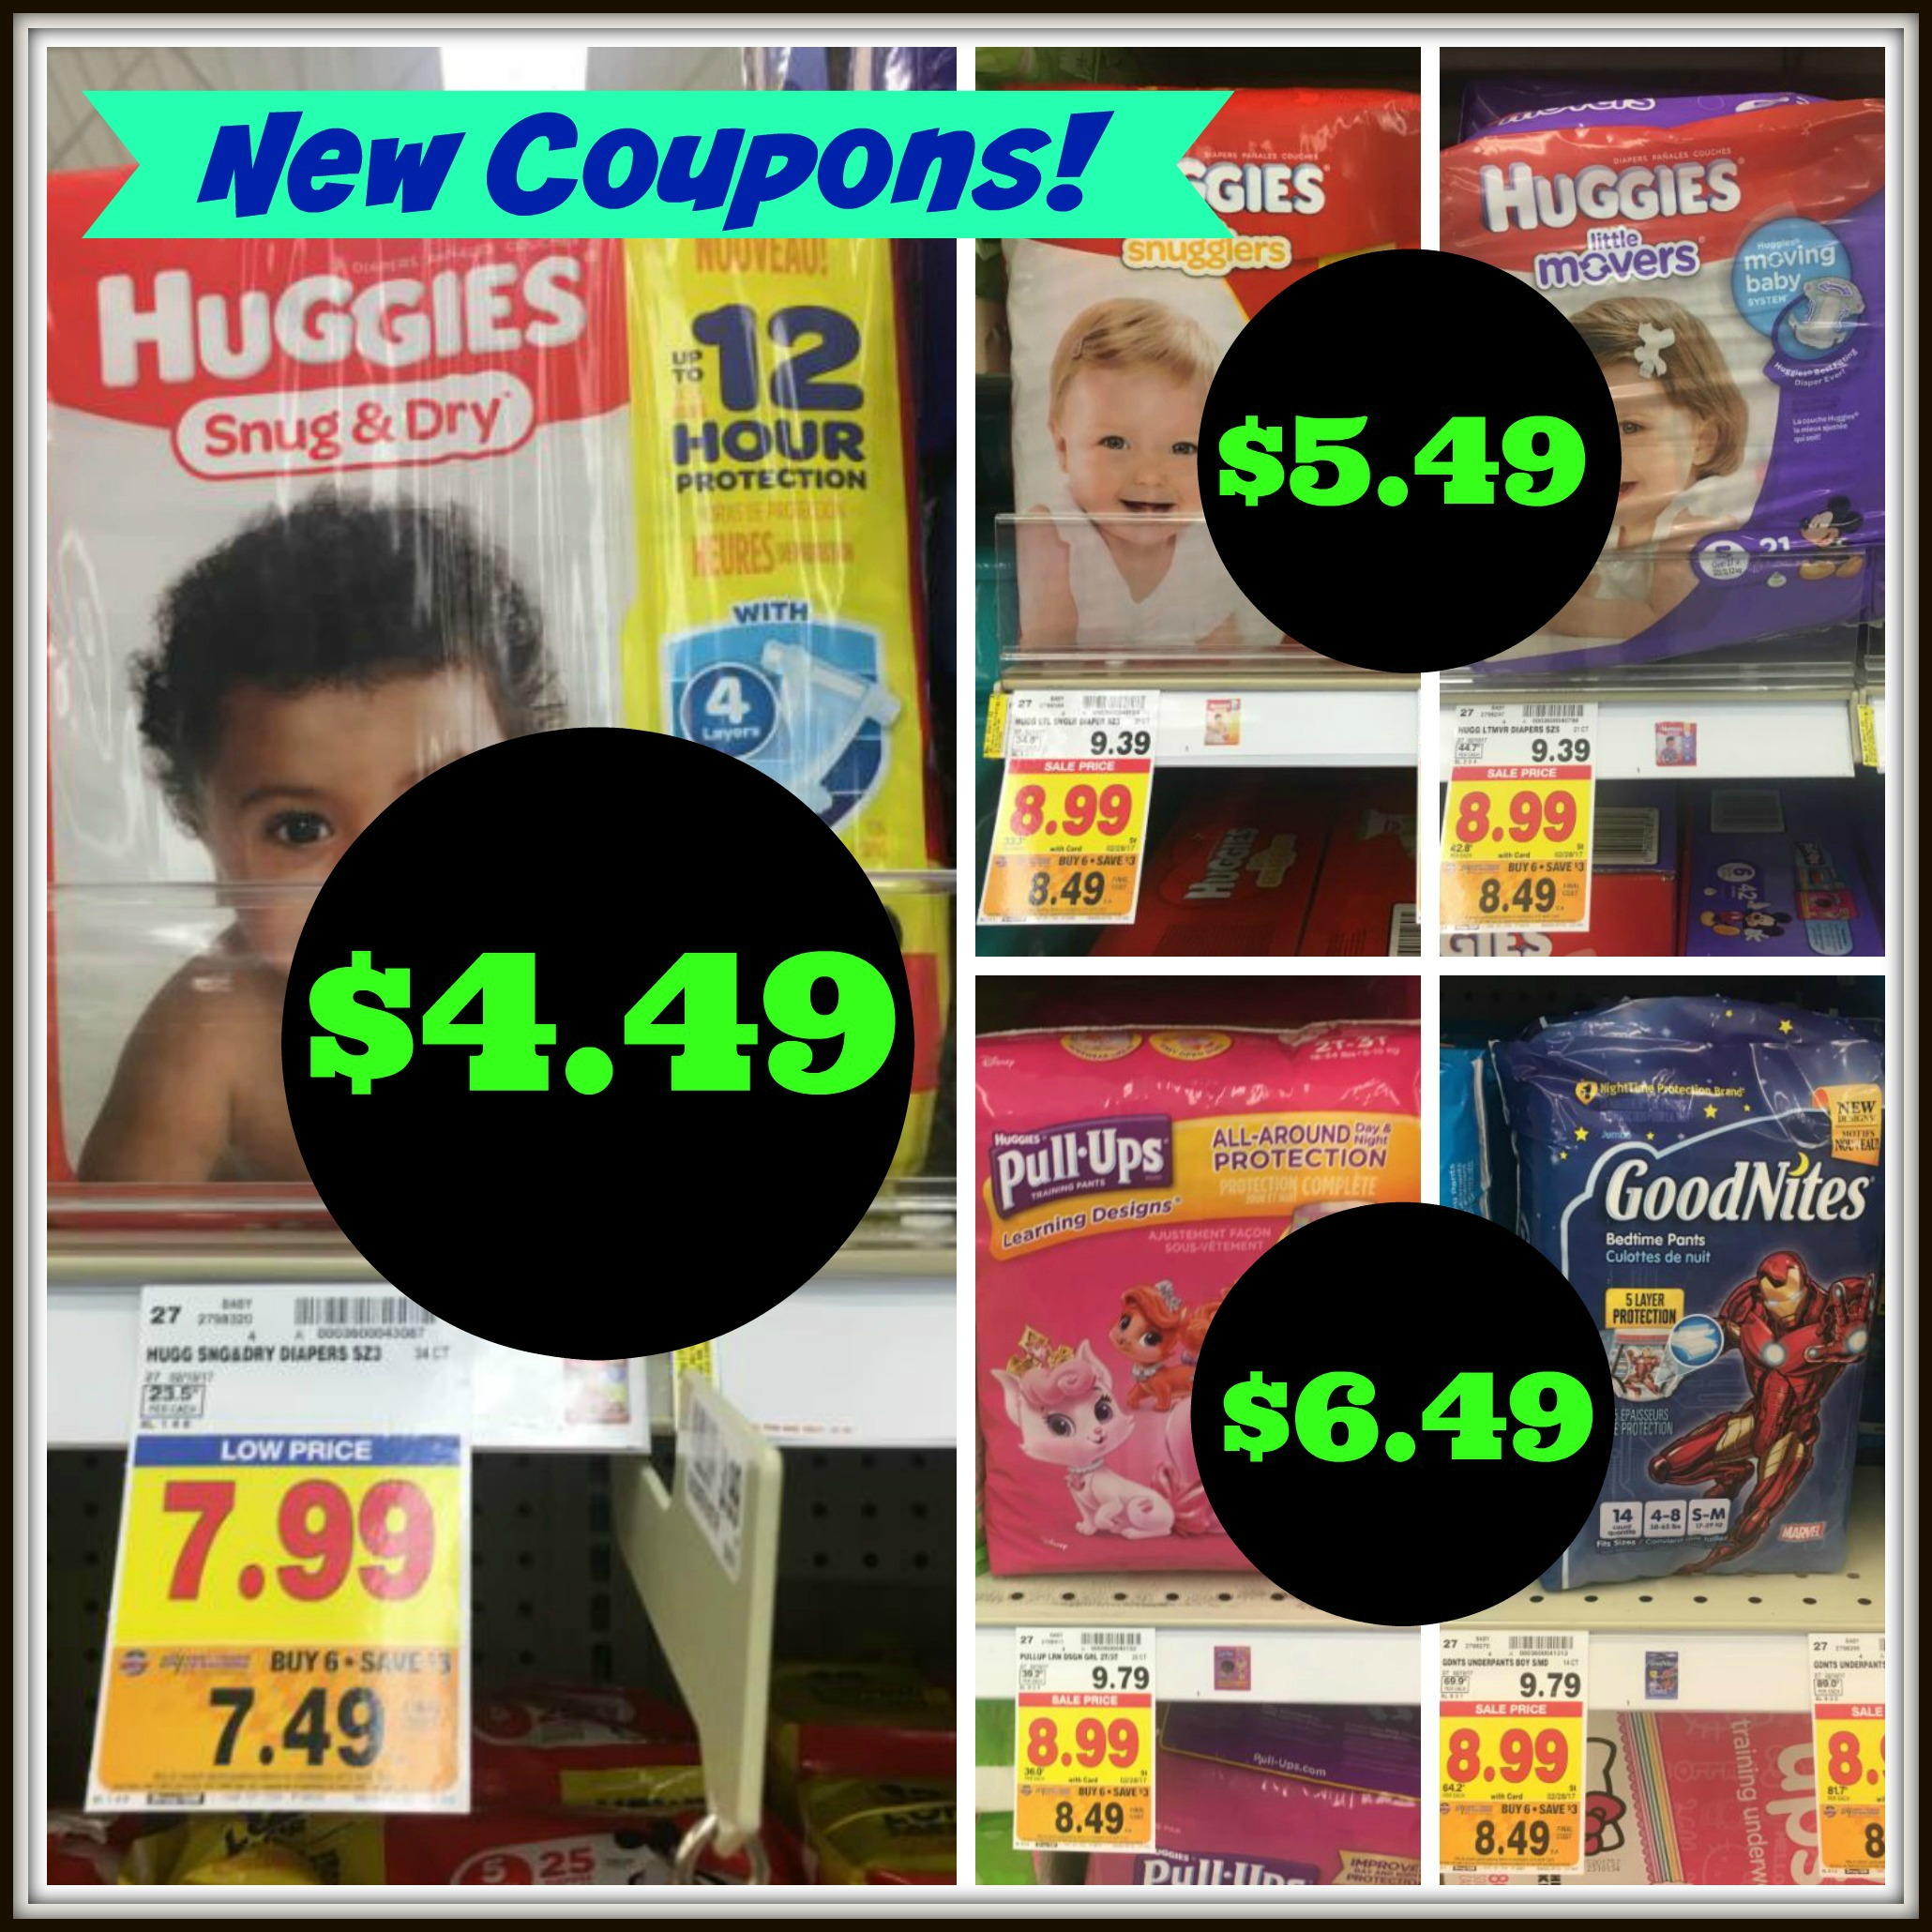 huggies diapers1